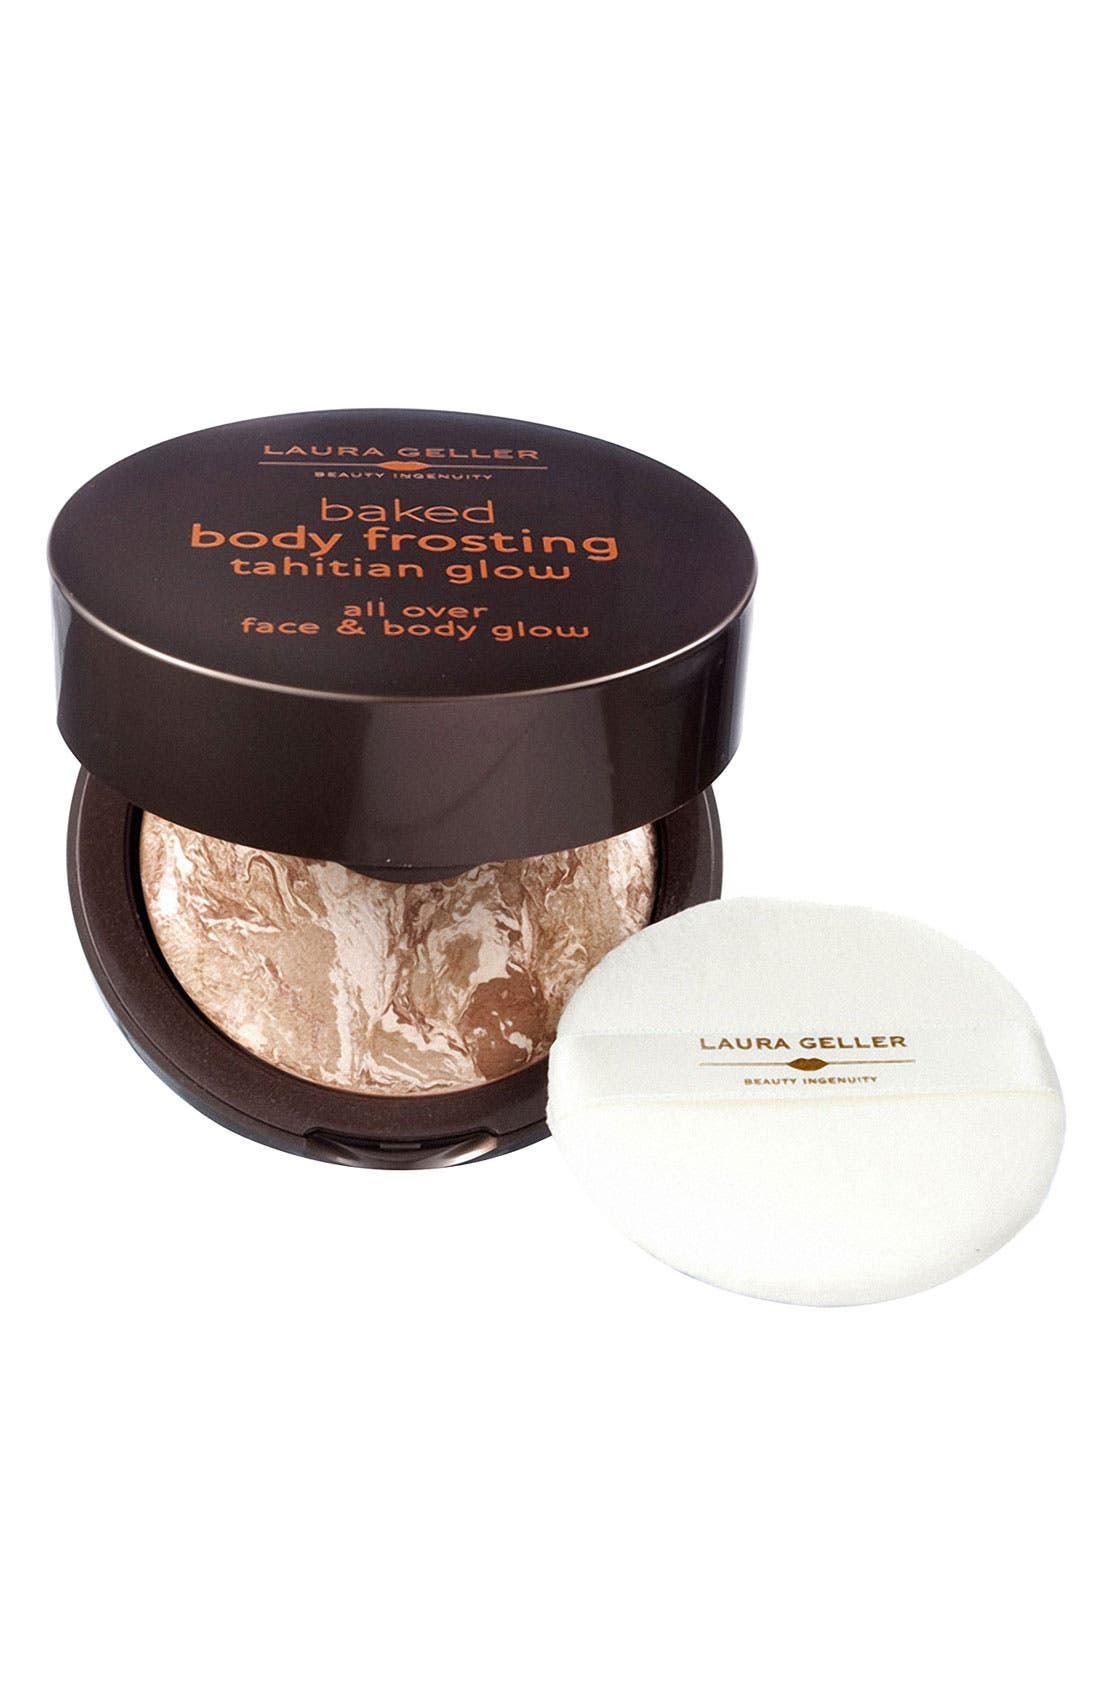 'Baked Body Frosting - Tahitian Glow' All Over Face & Body Glow,                             Main thumbnail 1, color,                             TAHITIAN GLOW